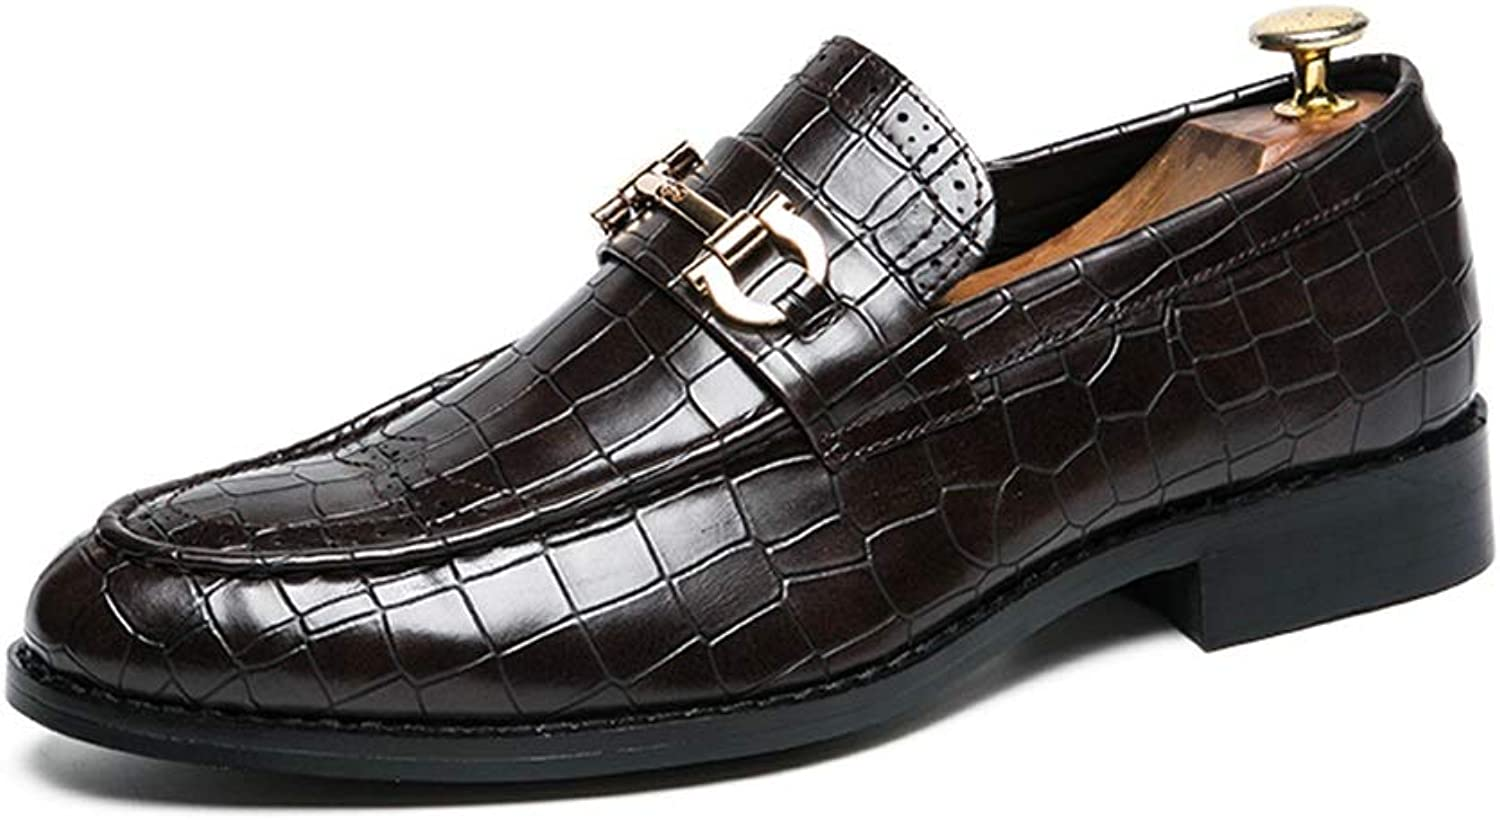 XIANGBAO-Personality Fashion Men's Oxford Casual Personality Texture Rustproof Metal Decoration Formal shoes